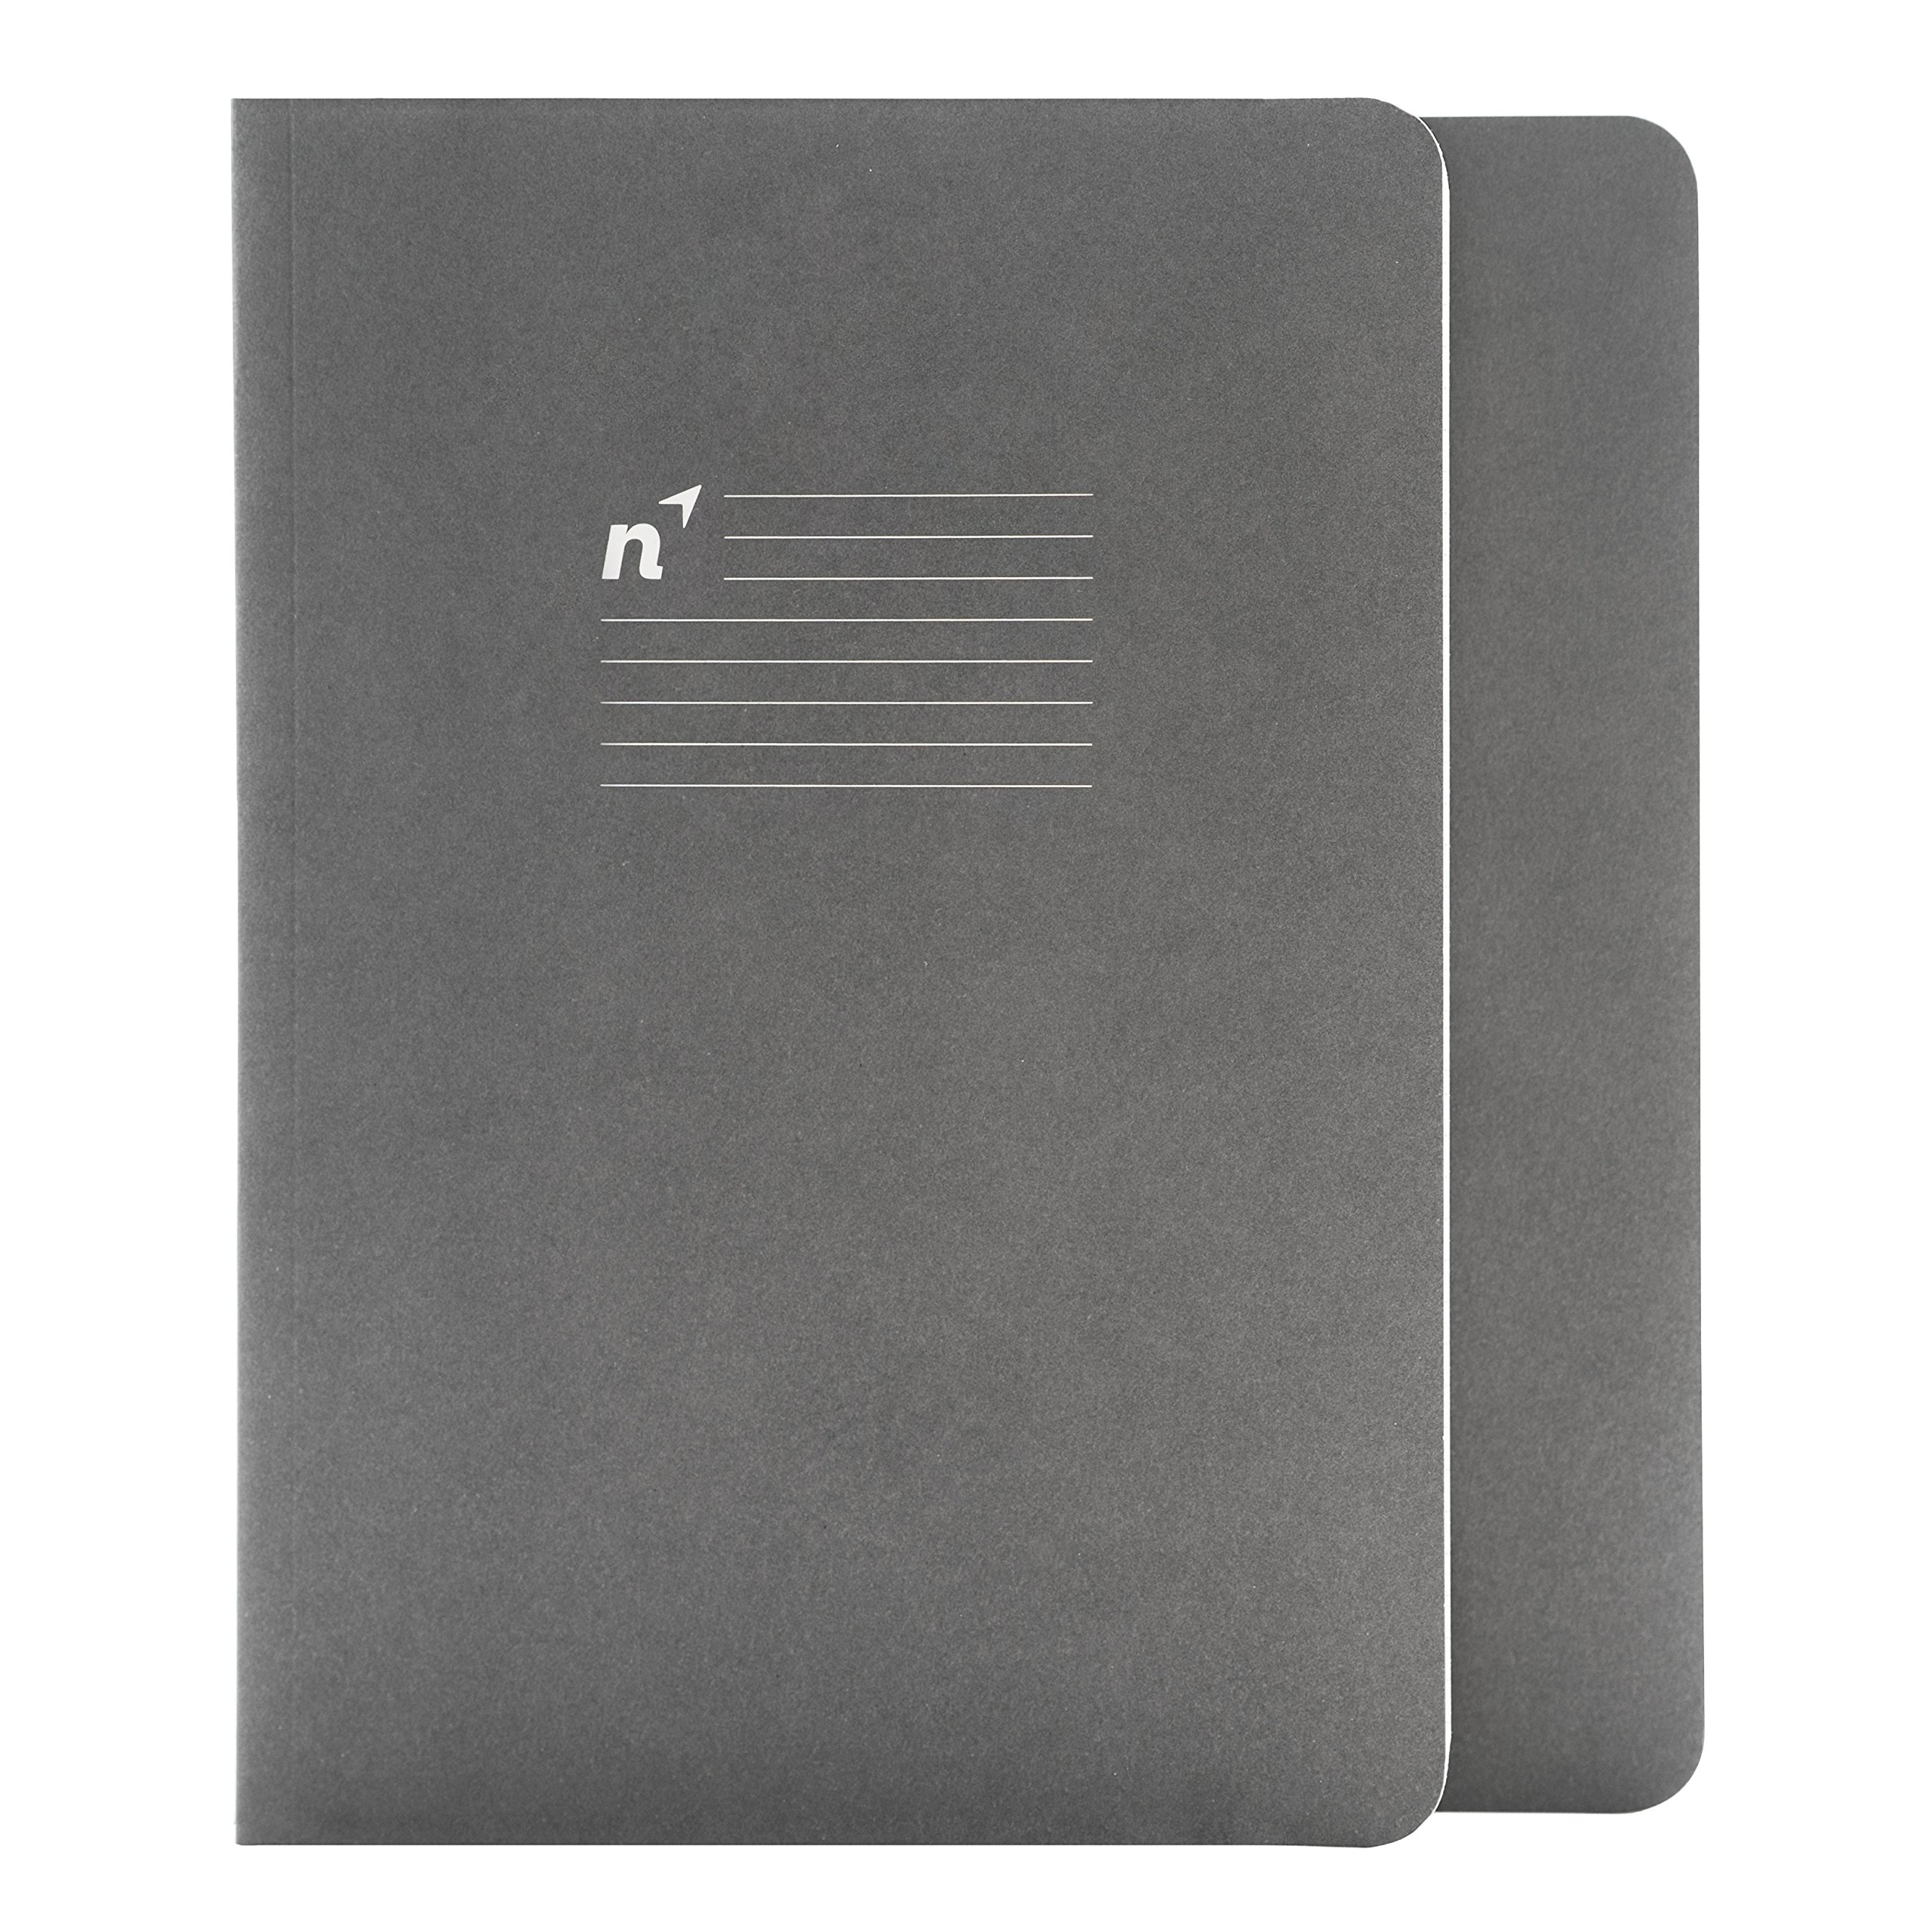 Northbooks A5 Softcover Writing Notebooks: Journal/Notebook / Diary/Notepad for School, Work, Travel or Personal Use - 144 Pages - 5.81'' x 8.25'' Cream Lined College Ruled Paper - Gray, 2 Pack